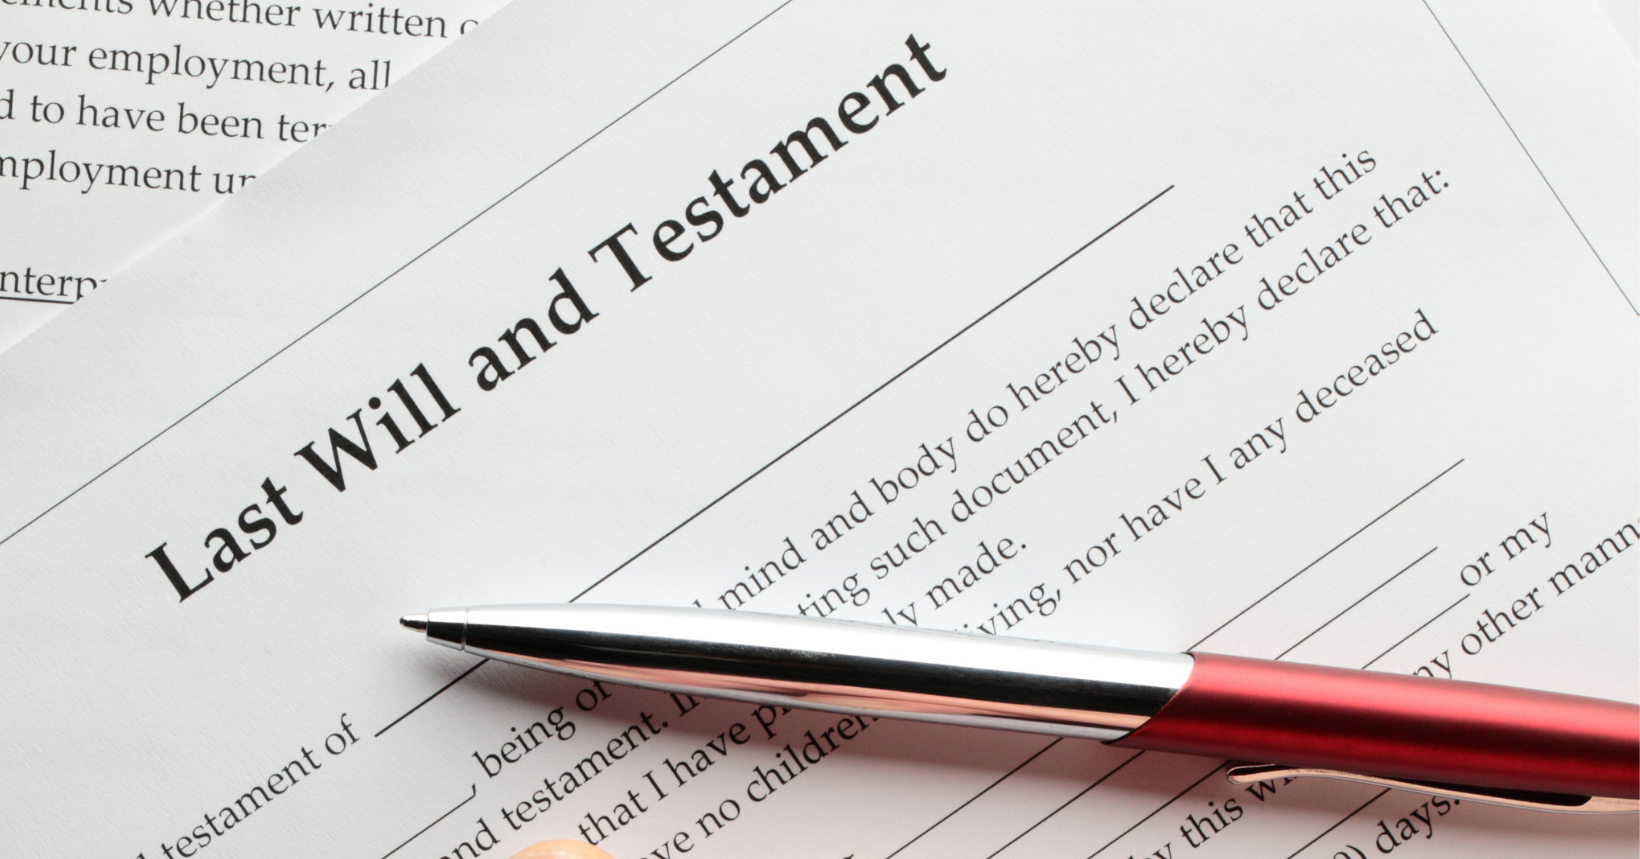 What are charitable bequests for nonprofits?